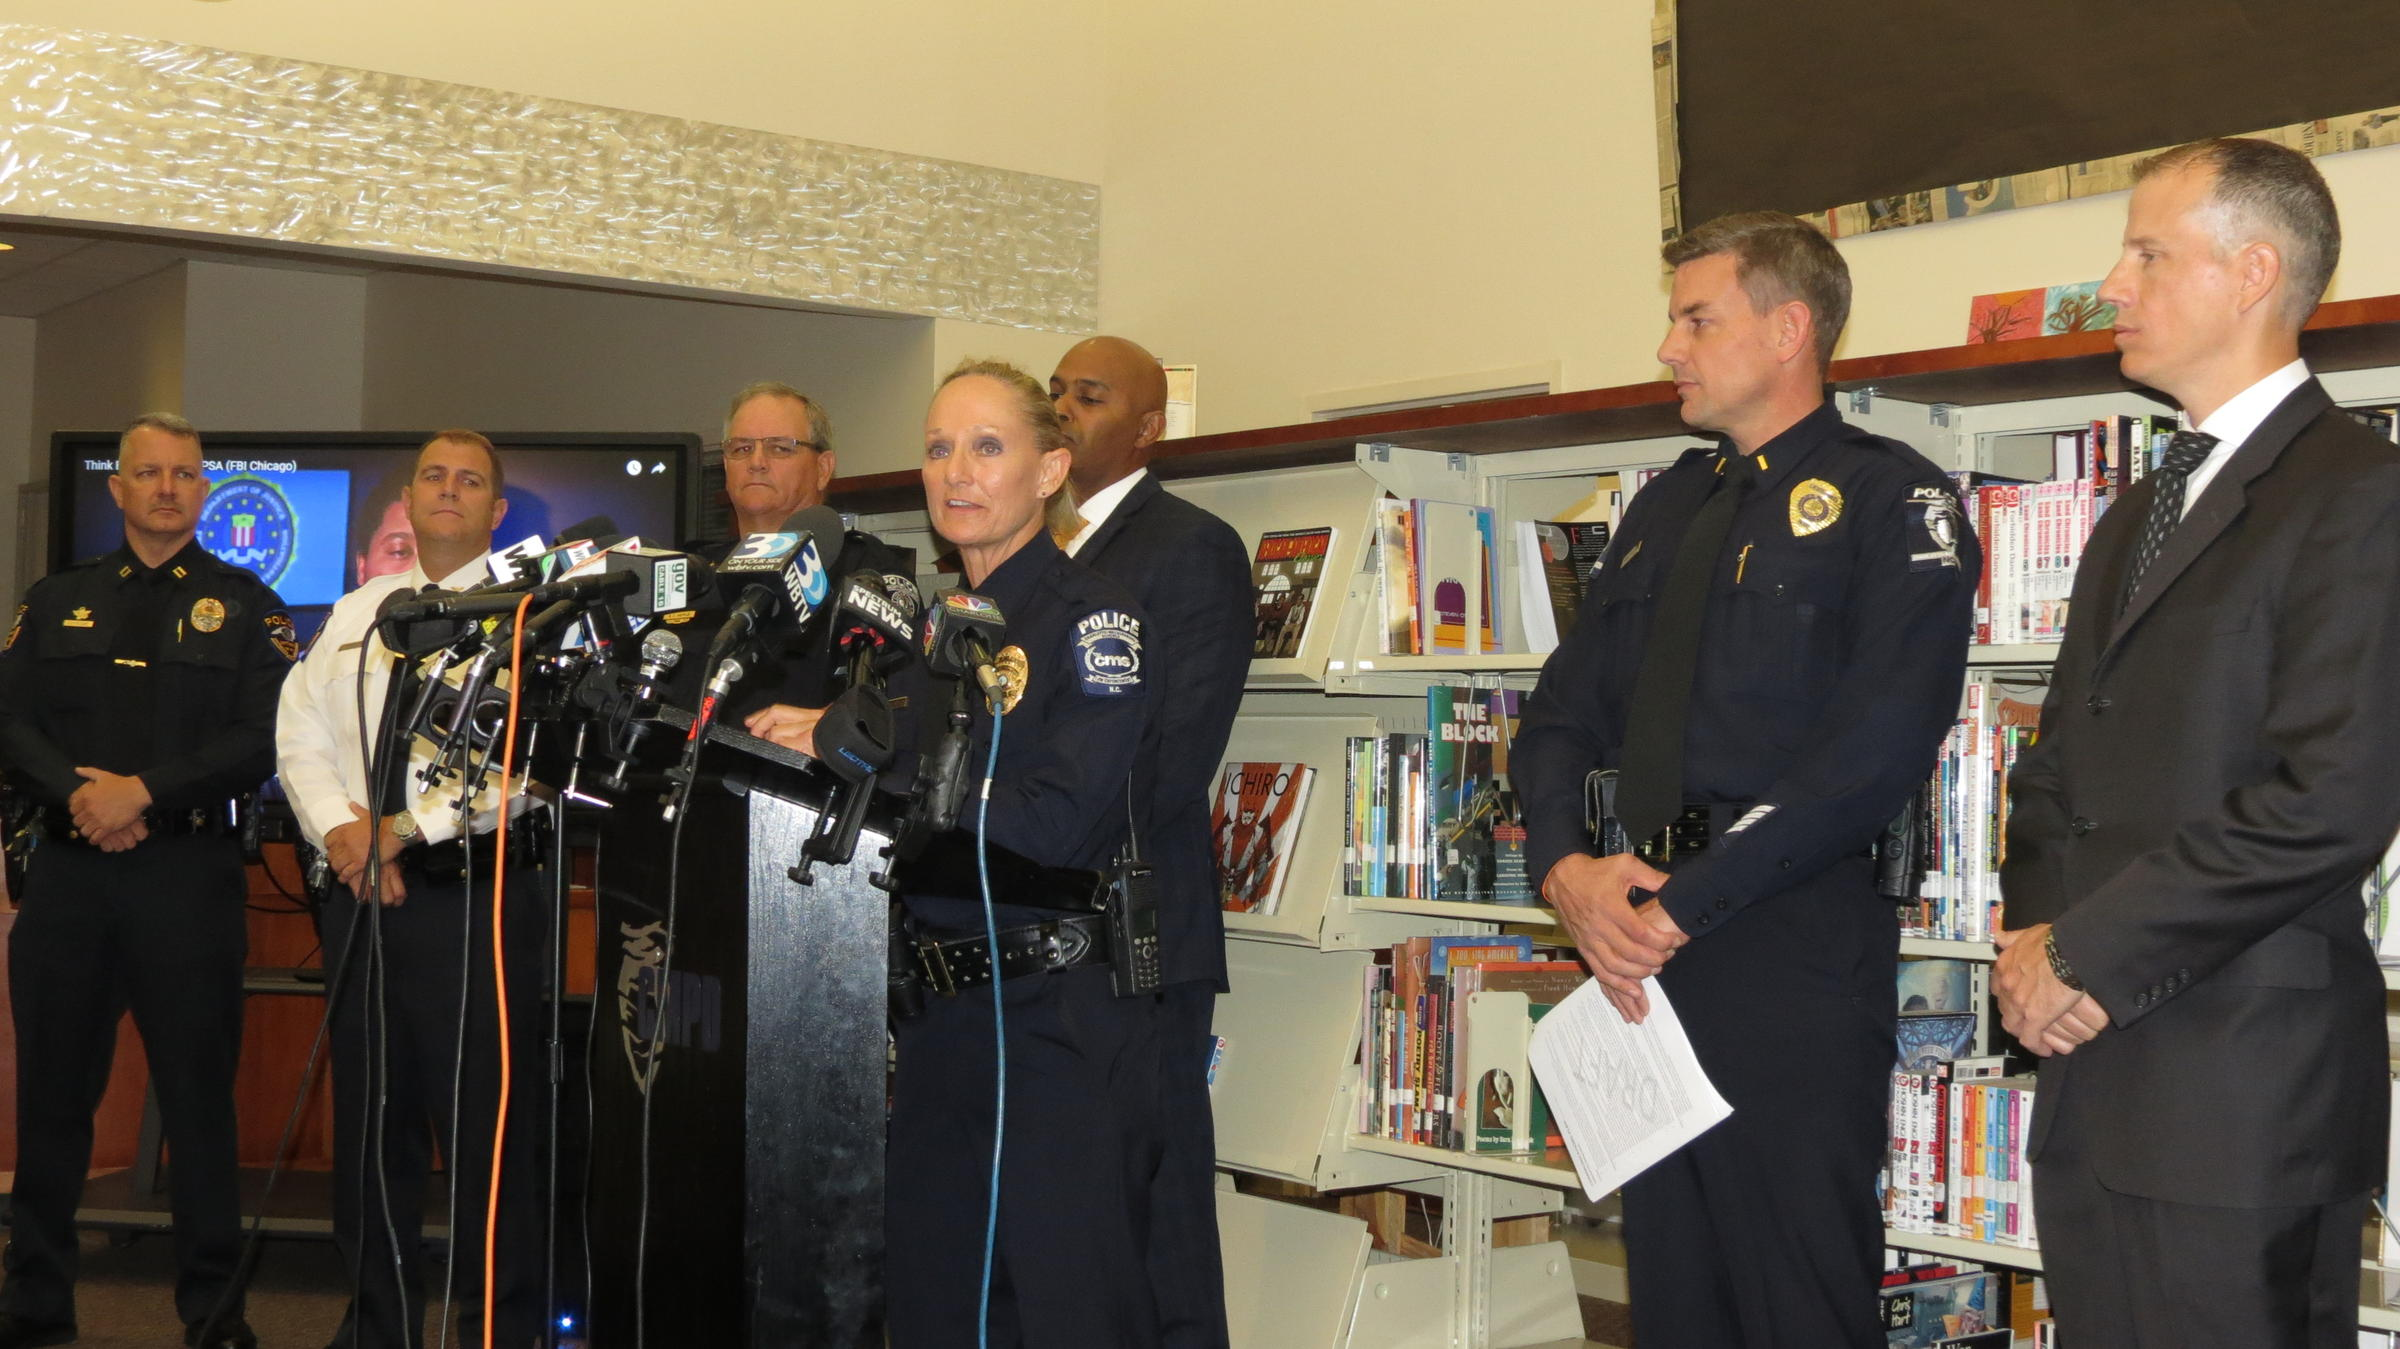 cms chief of police lisa mangum center is flanked by an fbi special agent and other police chiefs to announce a new campaign to stop hoax threats